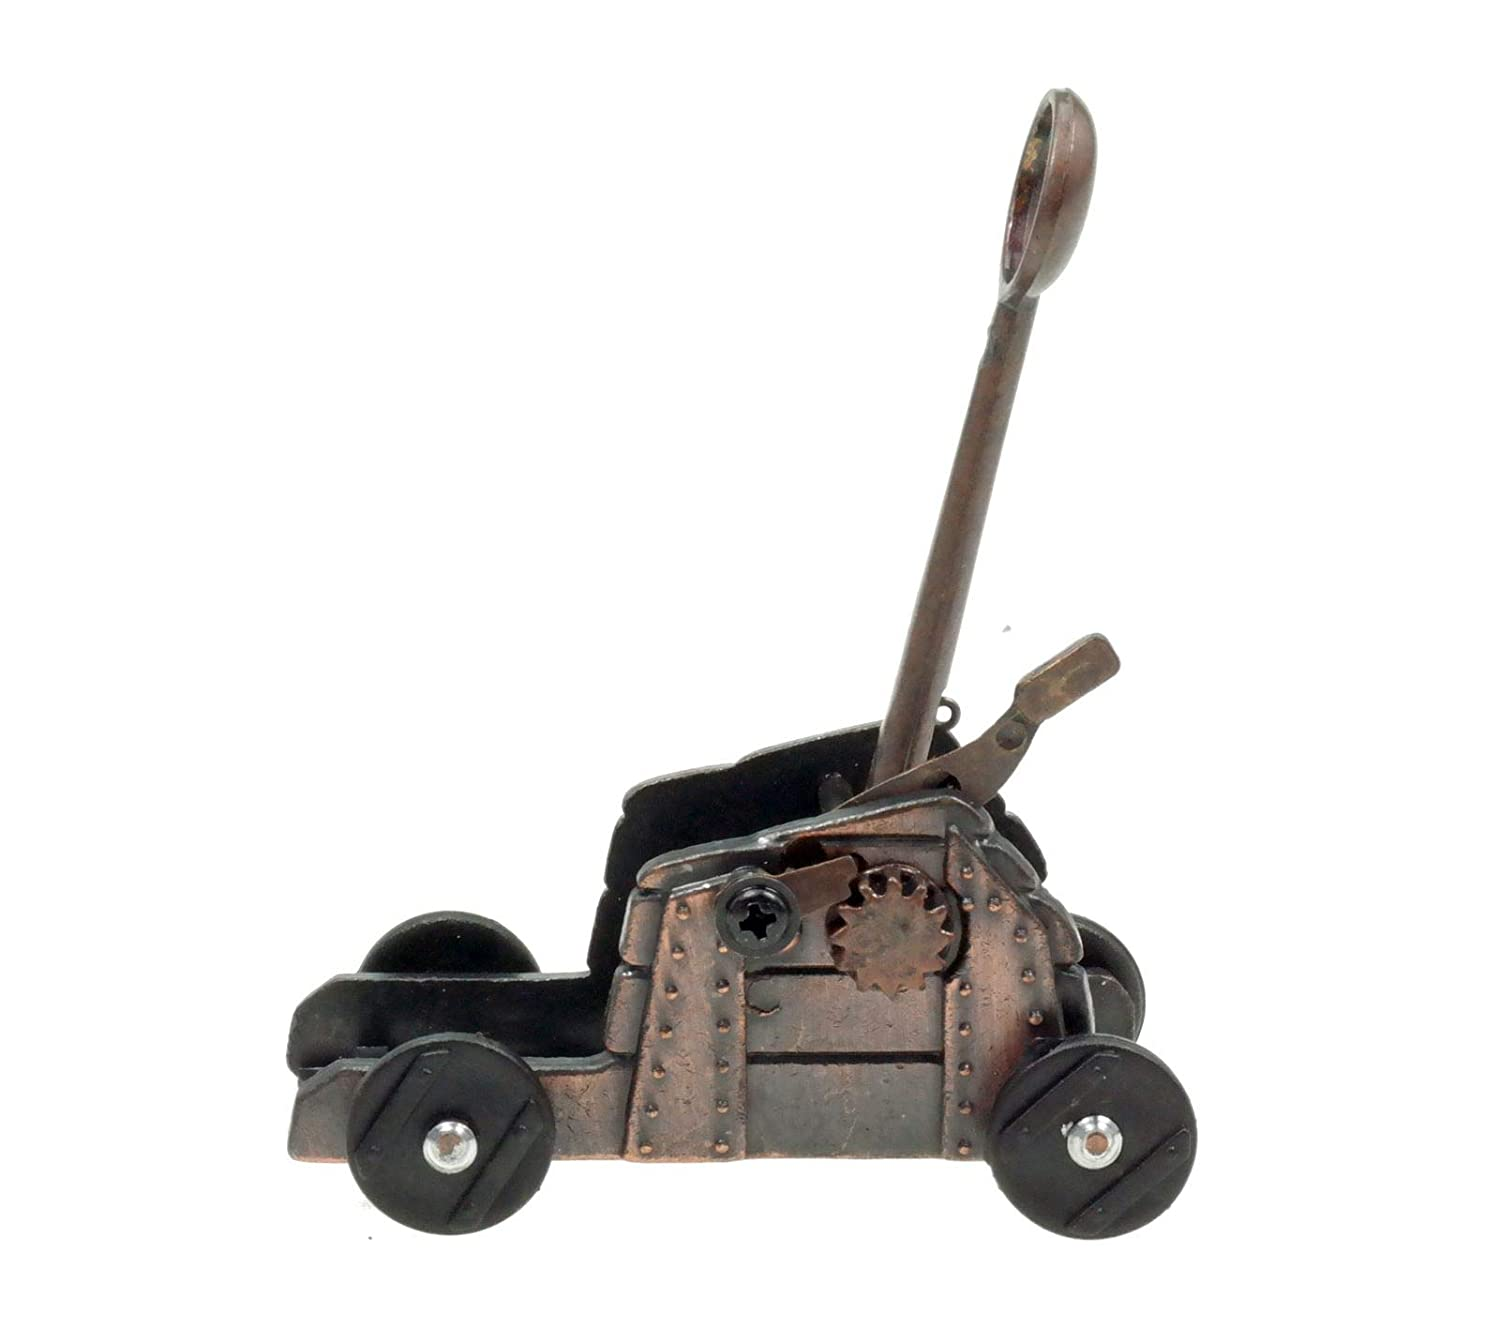 Die-Cast Miniature Catapult Pencil Sharpener Medieval Knight Castle Pencil Sharpener Die-Cast by Joh. Vogler GmbH